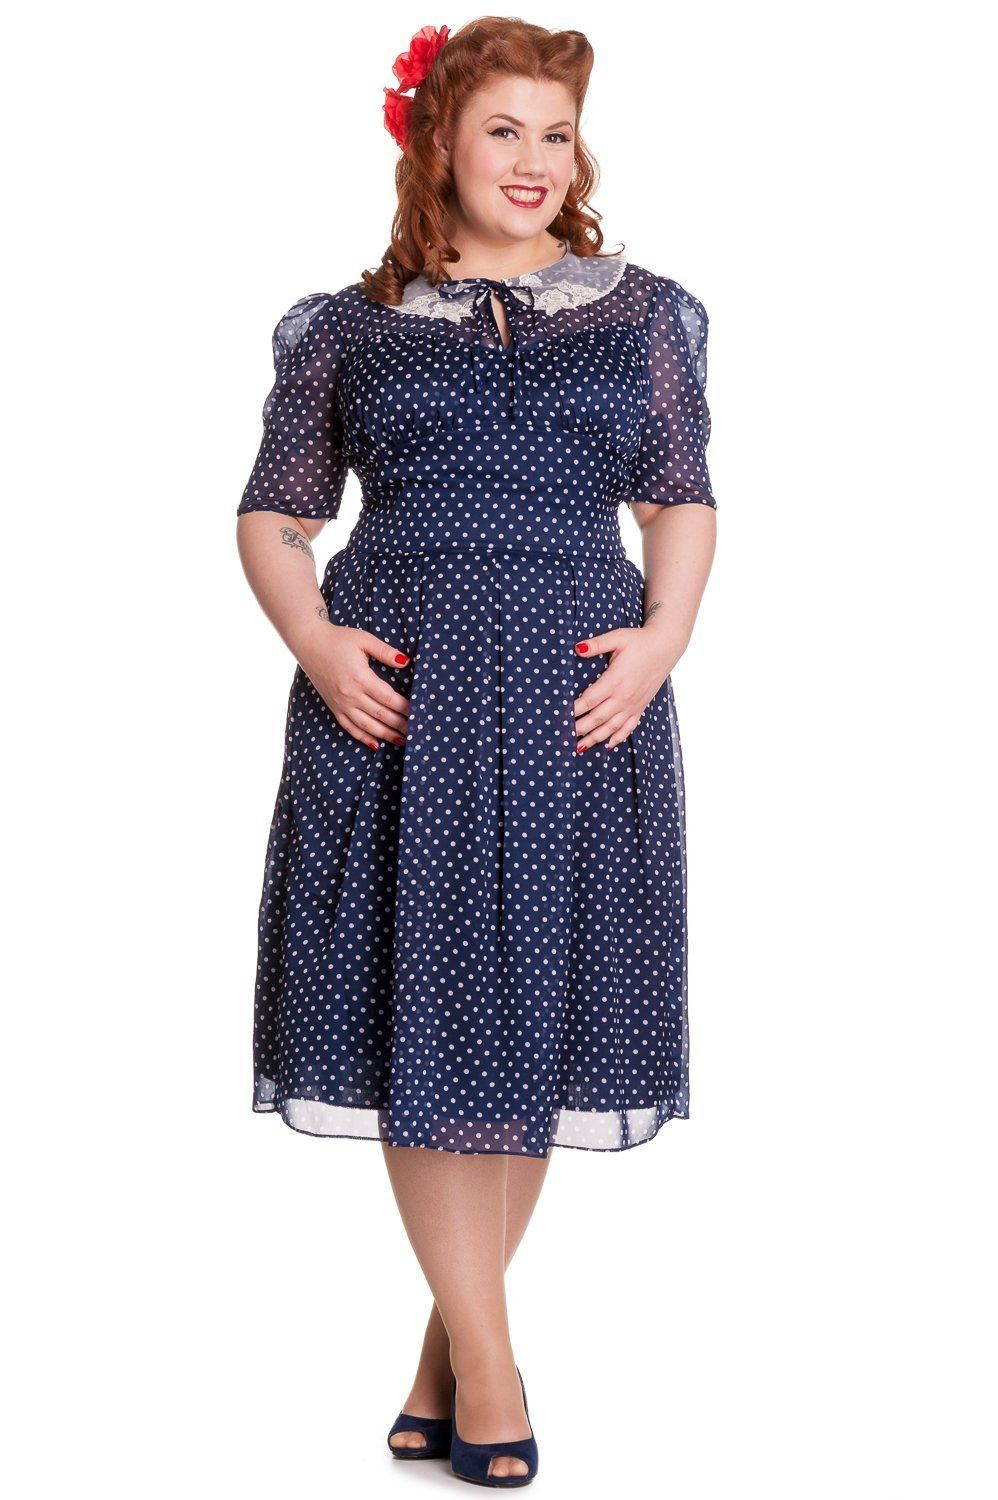 Vintage Style 1940s Plus Size Dresses | 1940s fashion ...